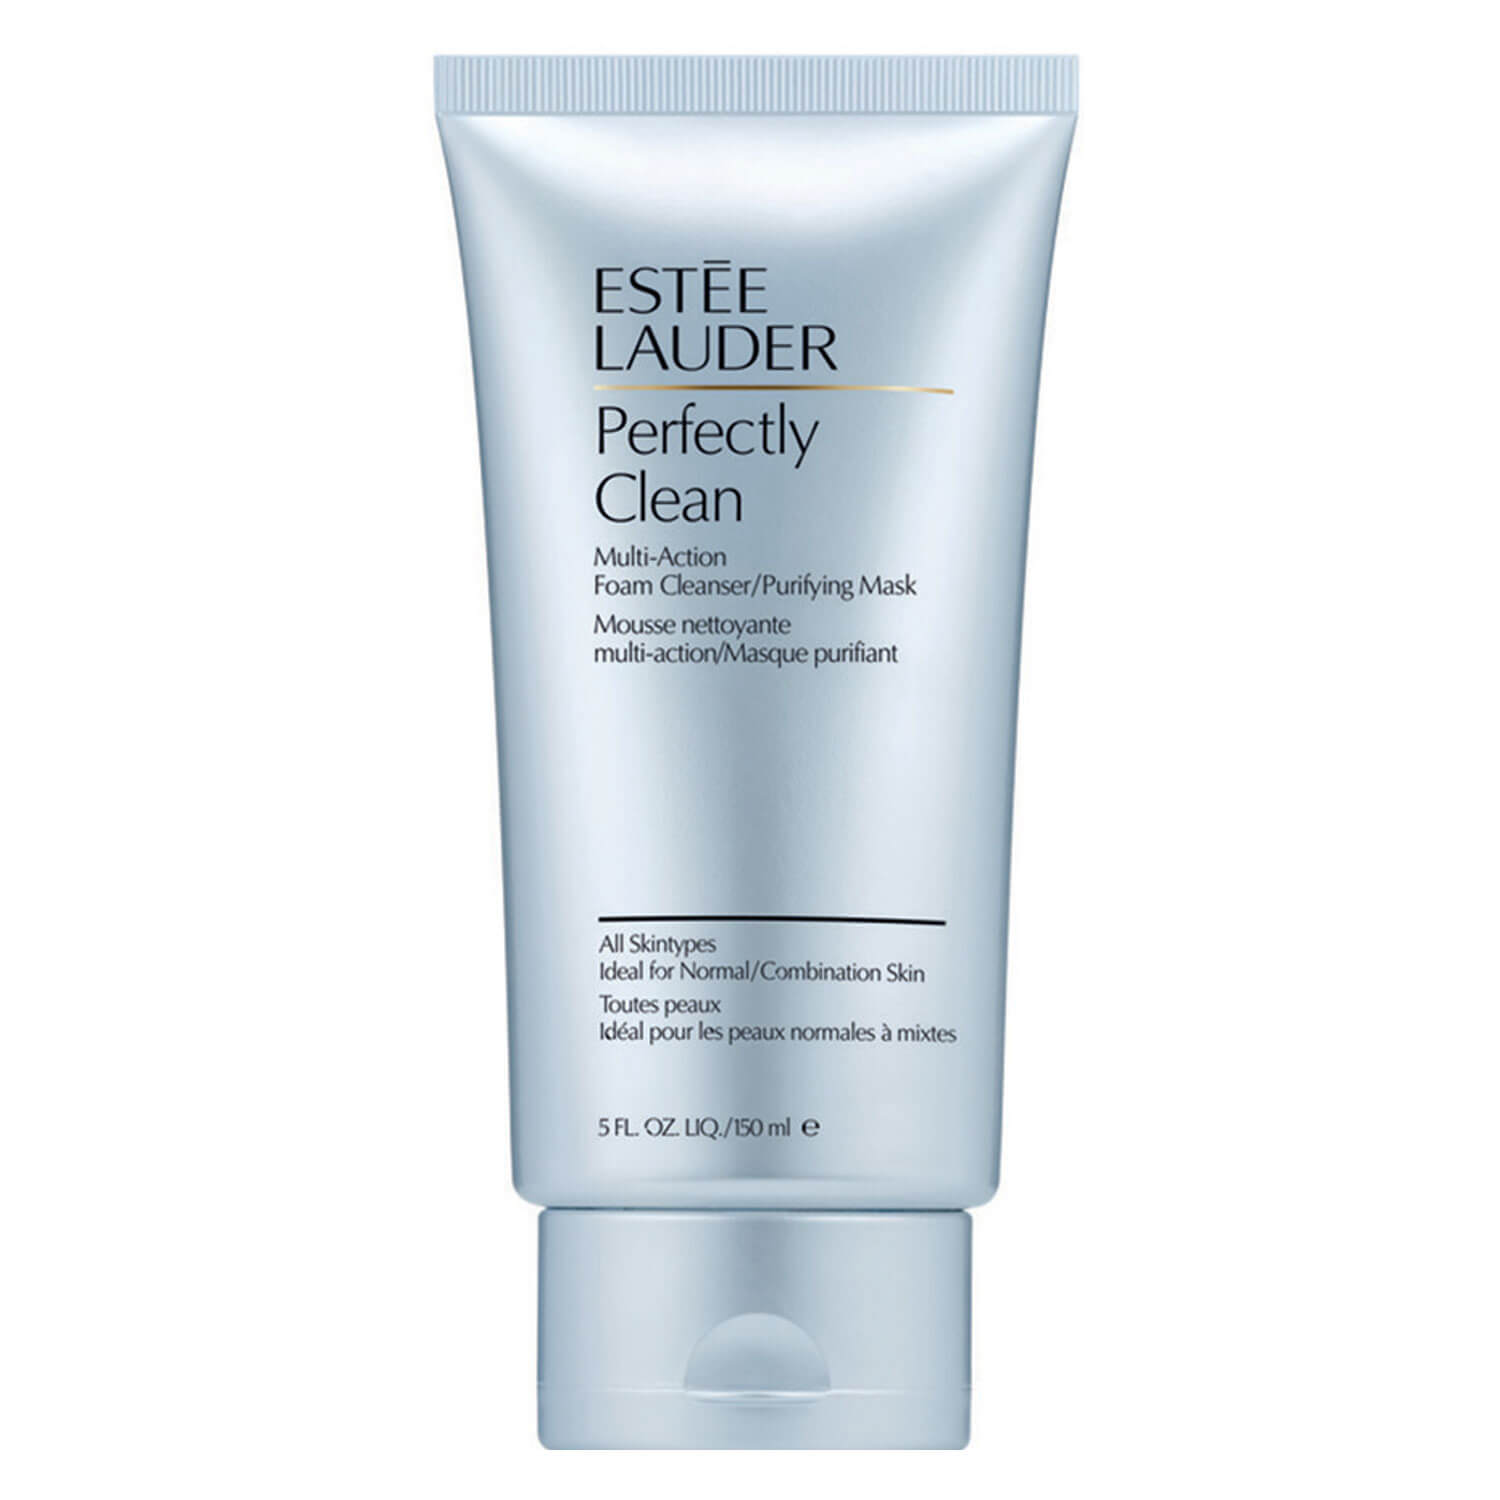 Perfectly Clean - Multi-Action Foam Cleanser/Purifying Mask